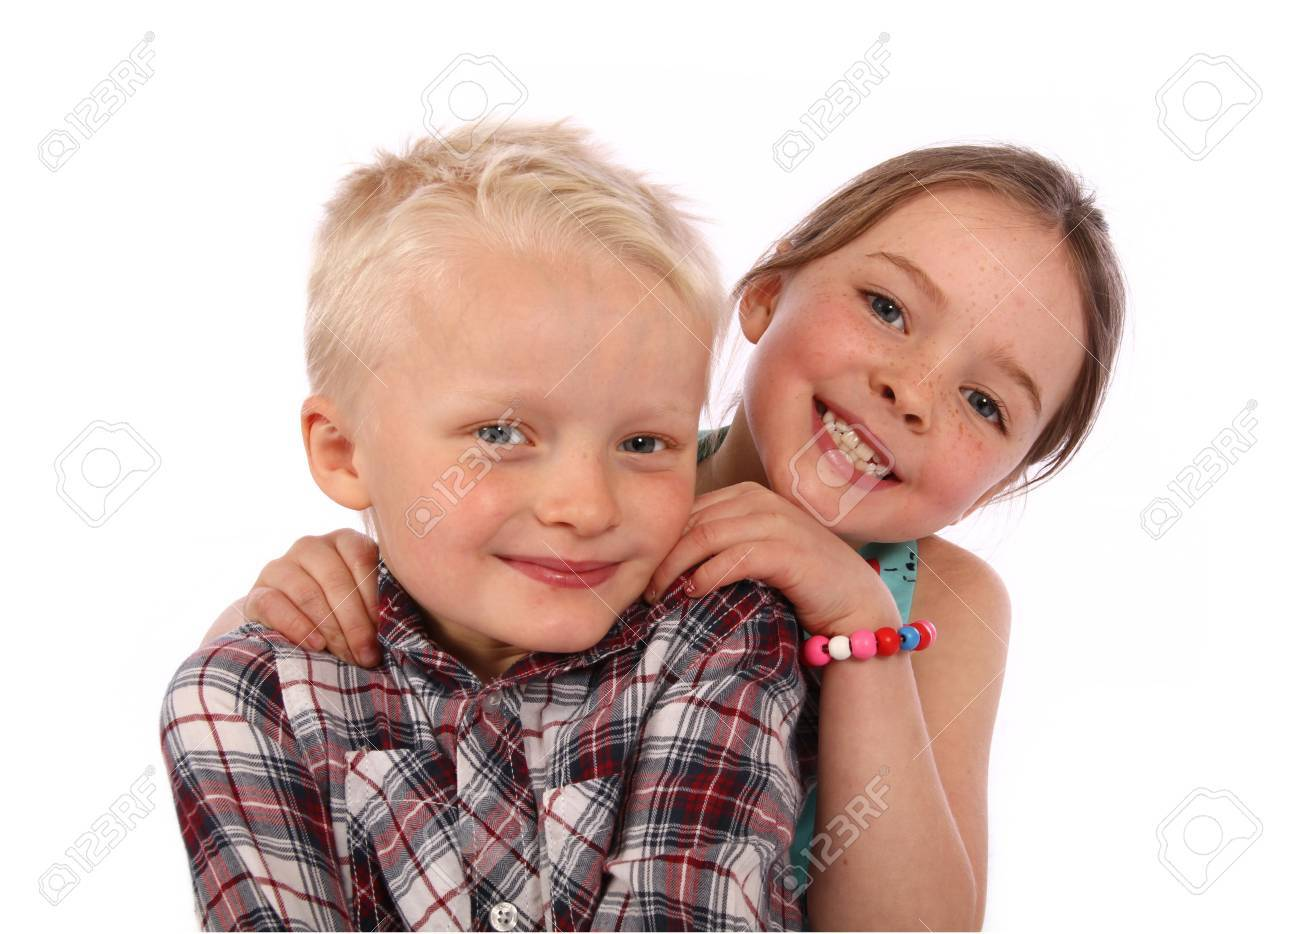 brother and sister pose for a photo together on a white background Stock Photo - 15644085